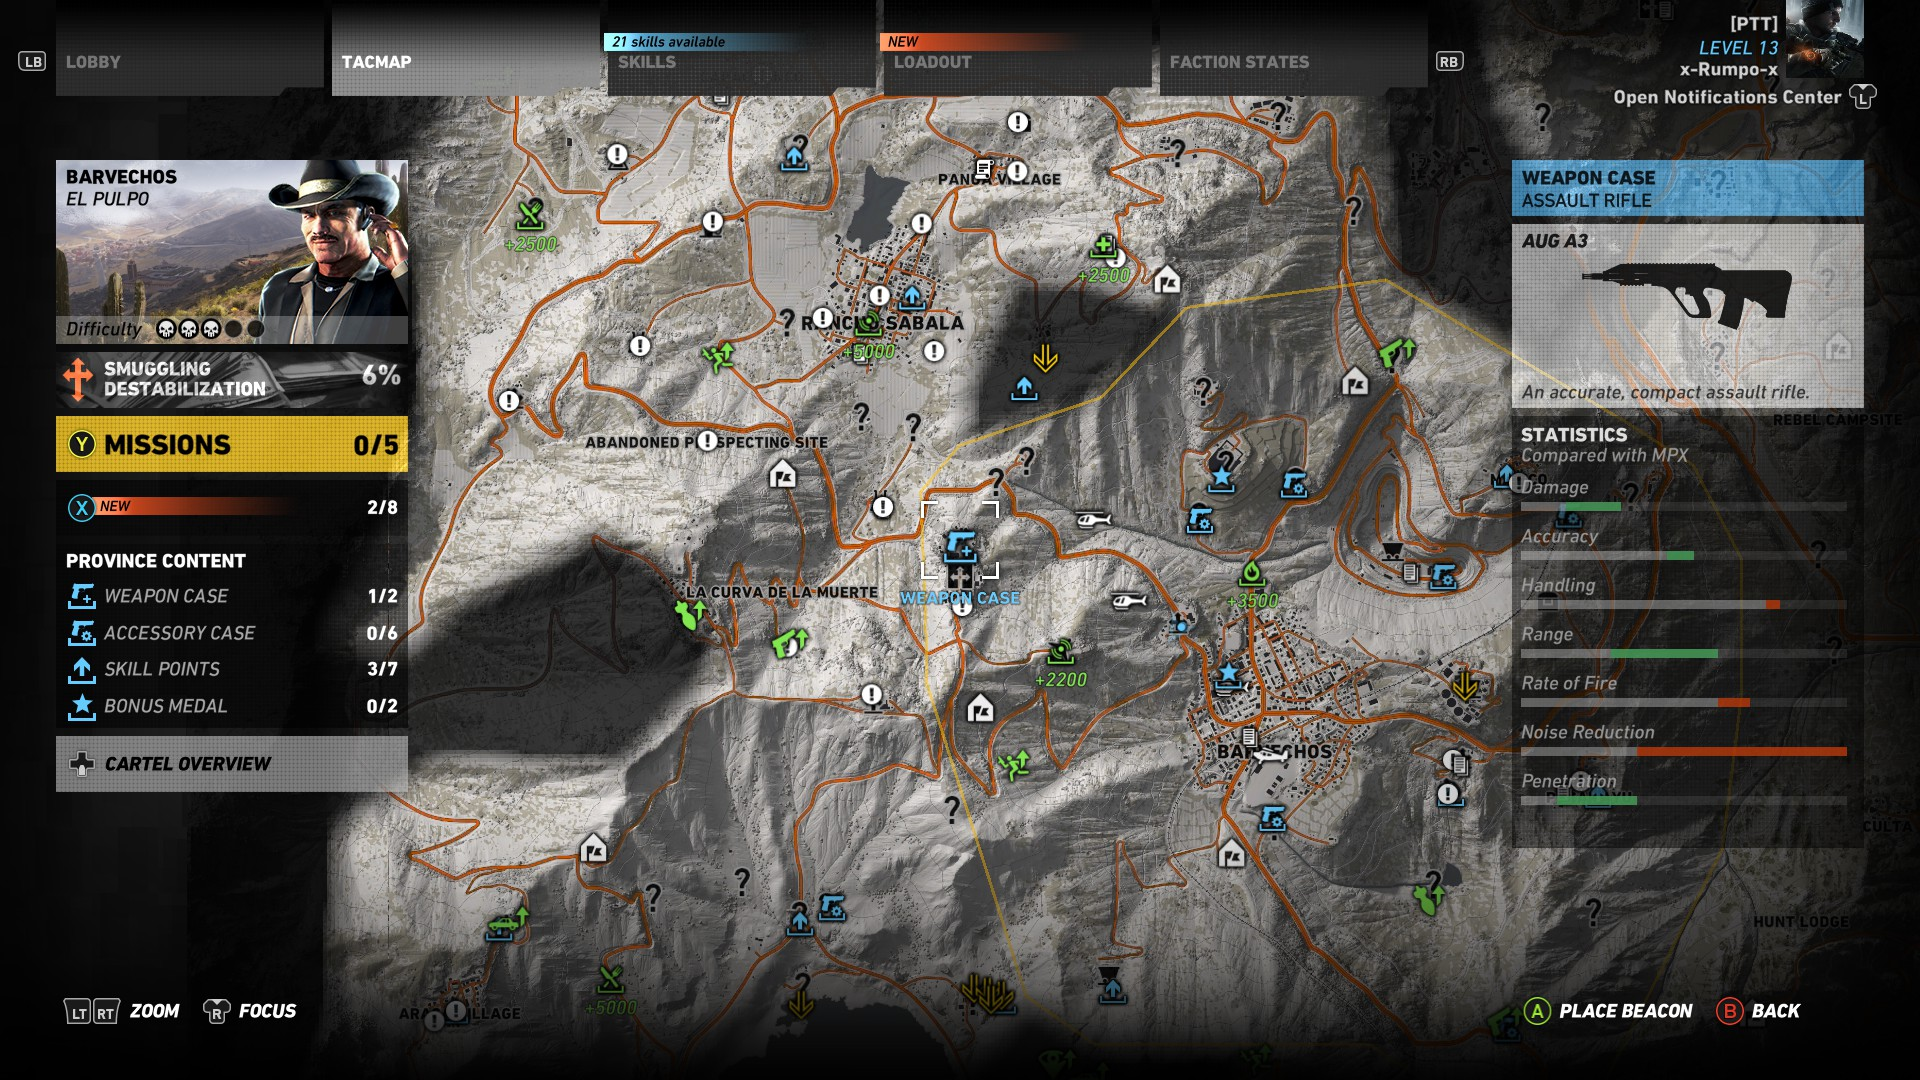 Aug A3 location in Ghost Recon Wildlands